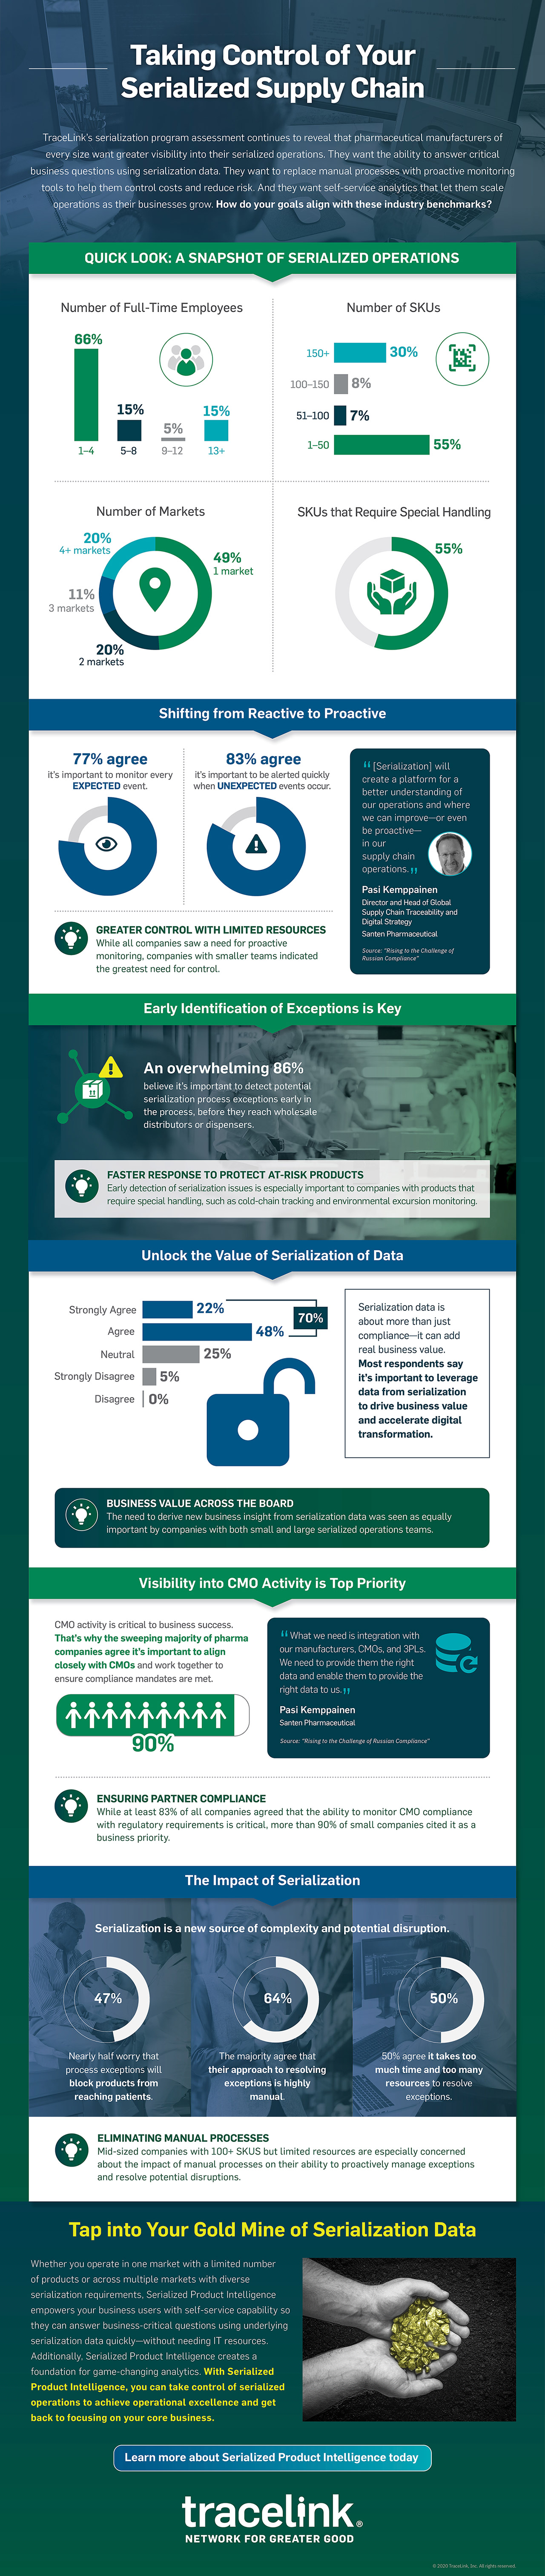 Infographic Serialized Operations Challenges and Opportunities